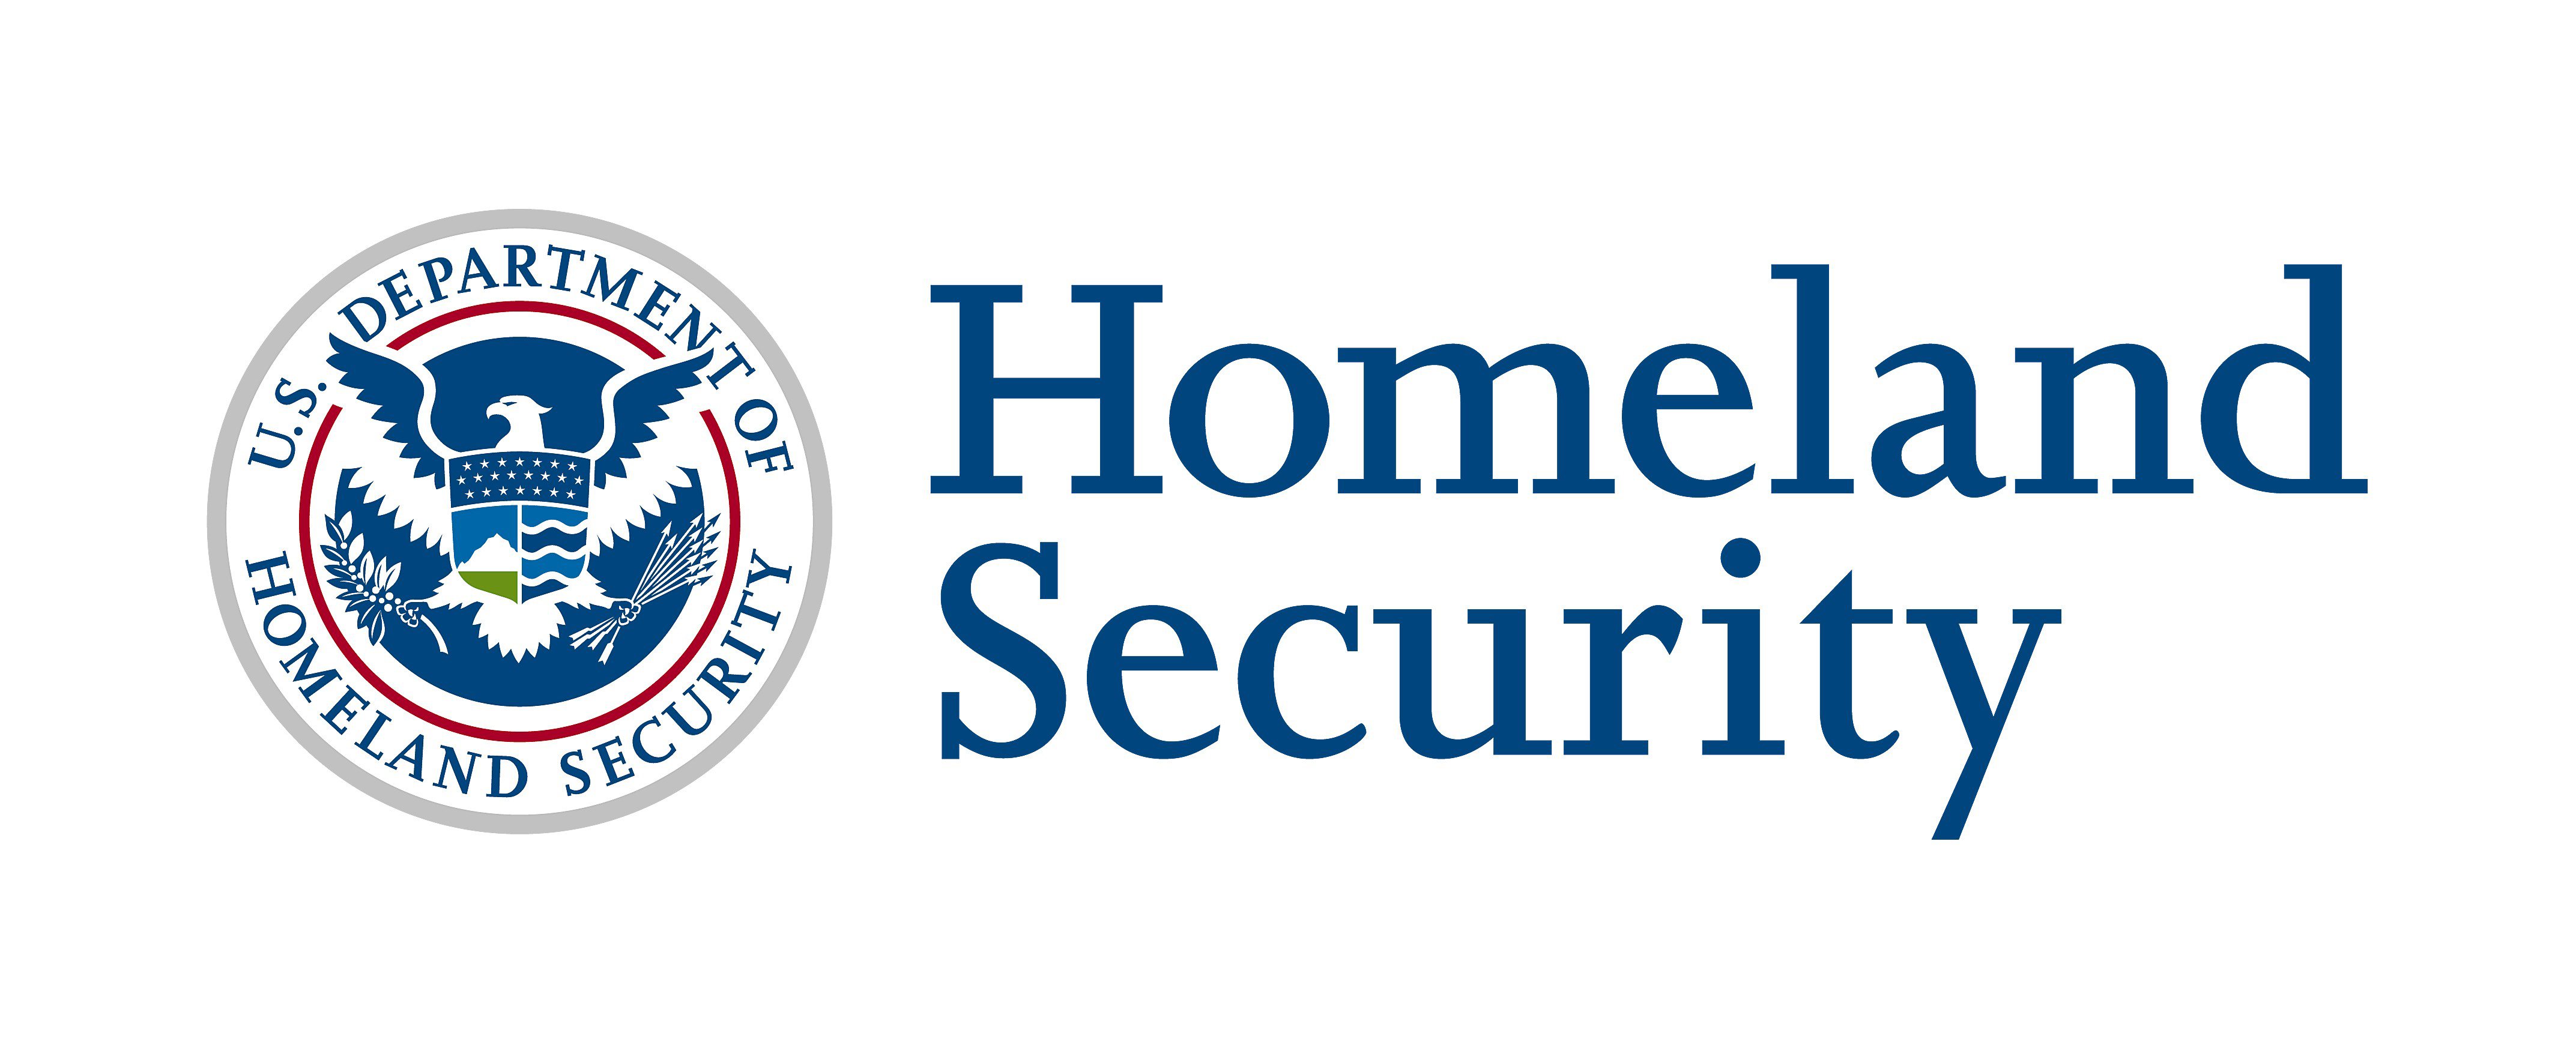 department of homeland security Nsse - security events national threat assessment center investigative mission cyber counterfeit forensic ectf & fctf submit counterfeit know your money most wanted overview leadership history  official website of the department of homeland security.